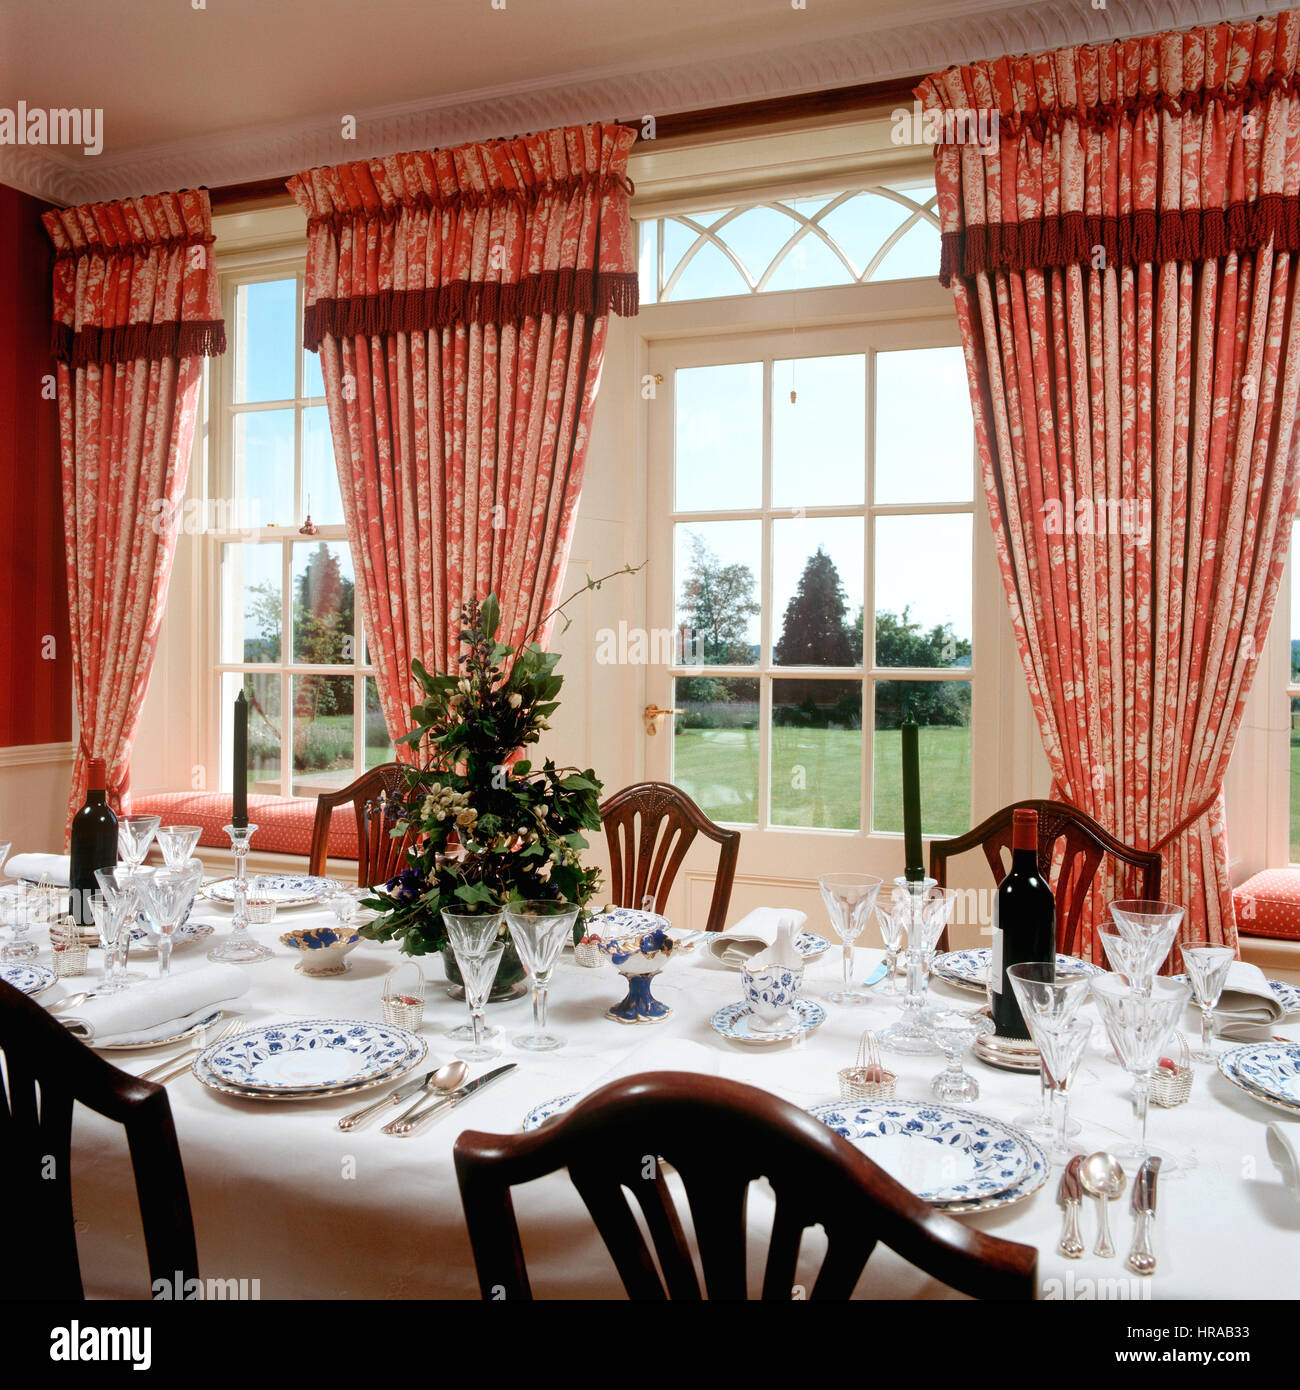 China and glassware in dining room with red patterned curtains and spectacular views to garden - Stock Image